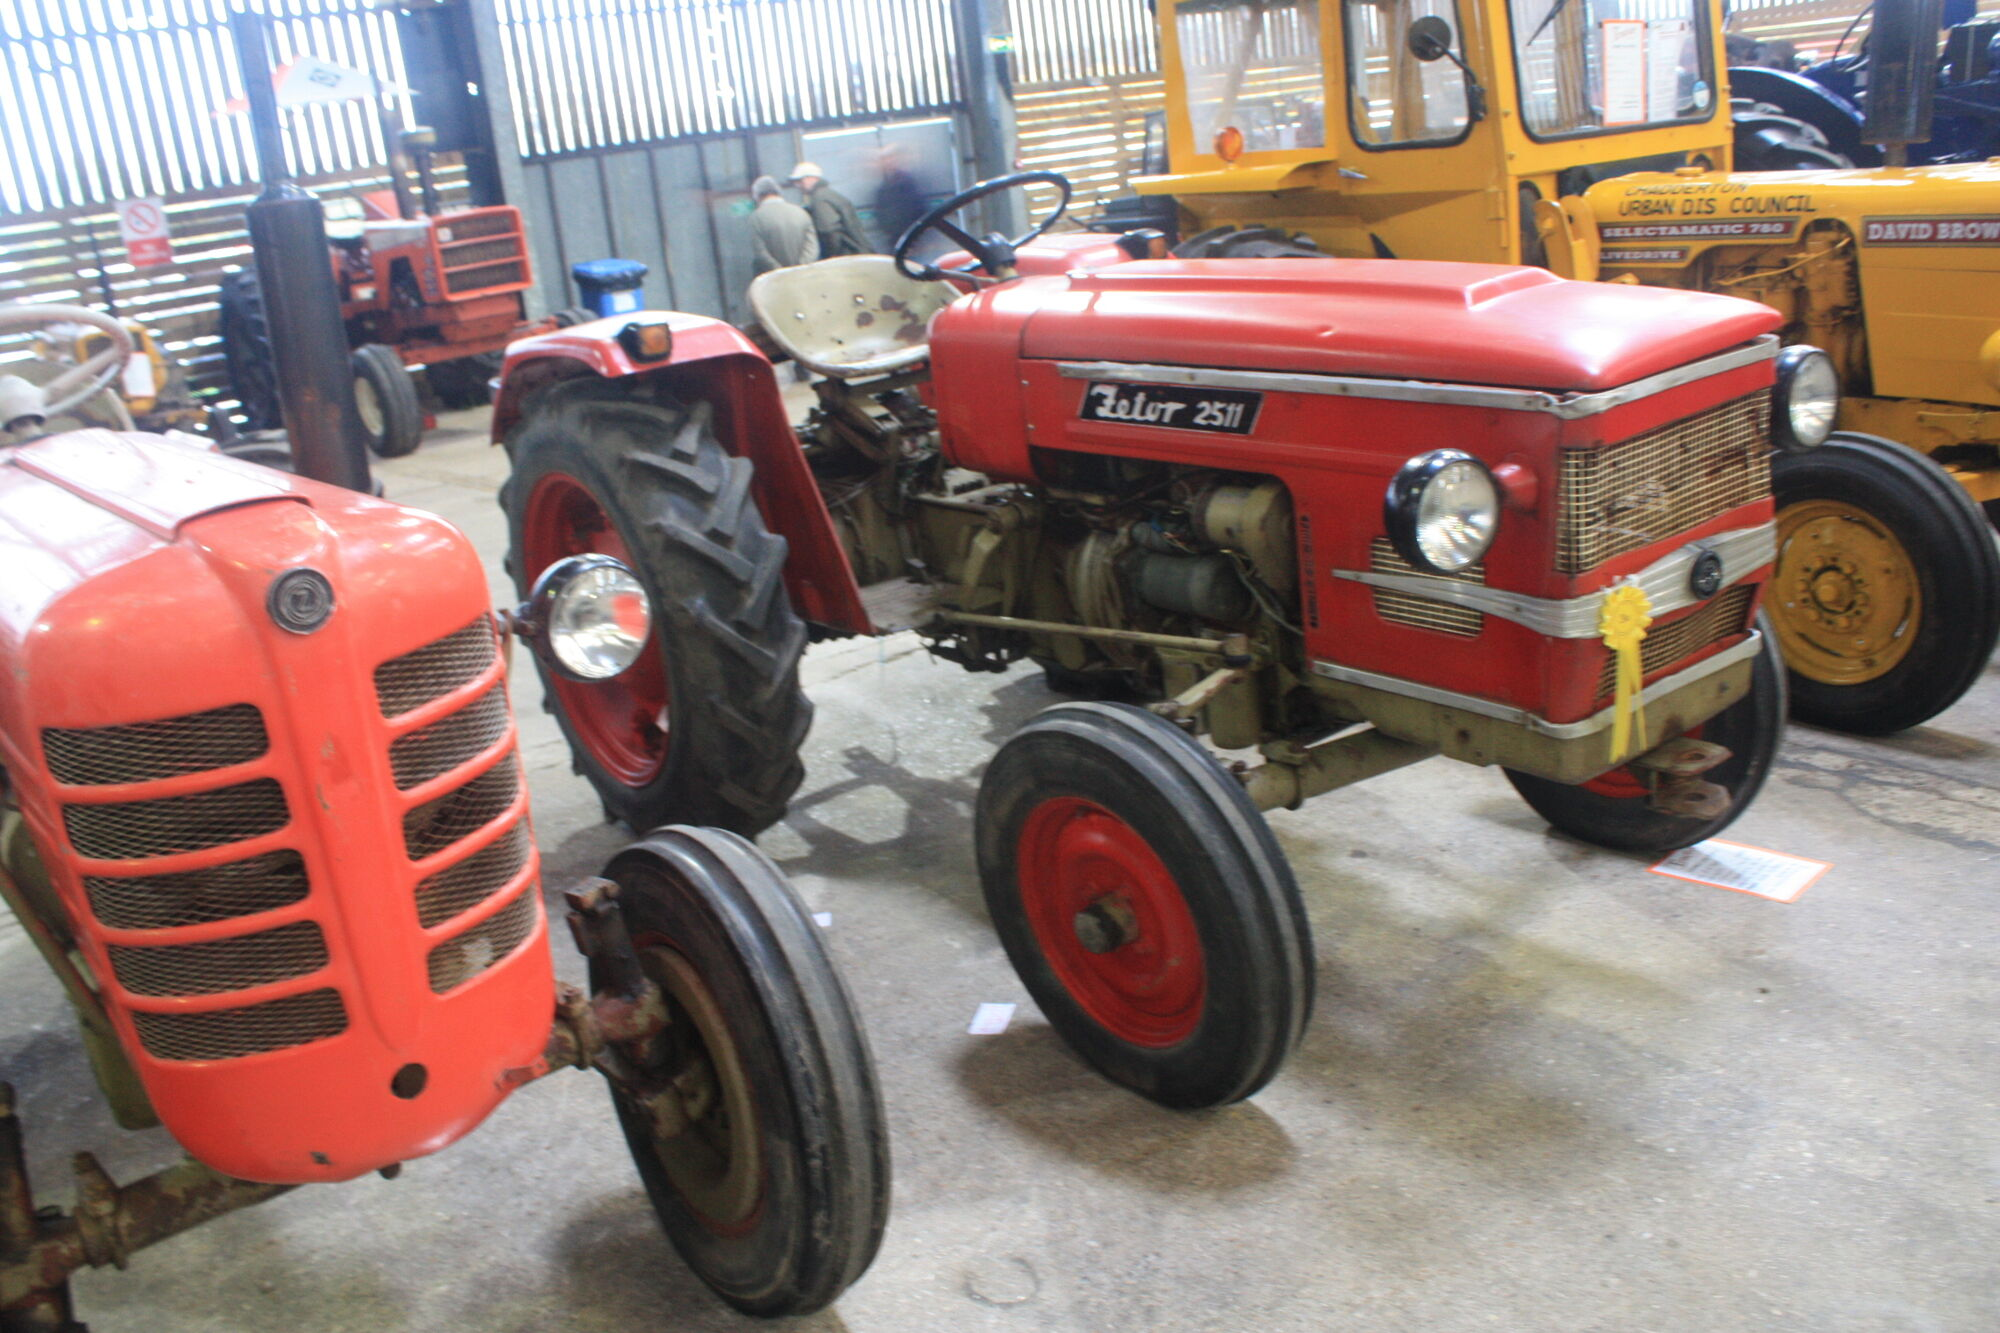 Zetor 2511 tractor construction plant wiki fandom powered by wikia asfbconference2016 Images